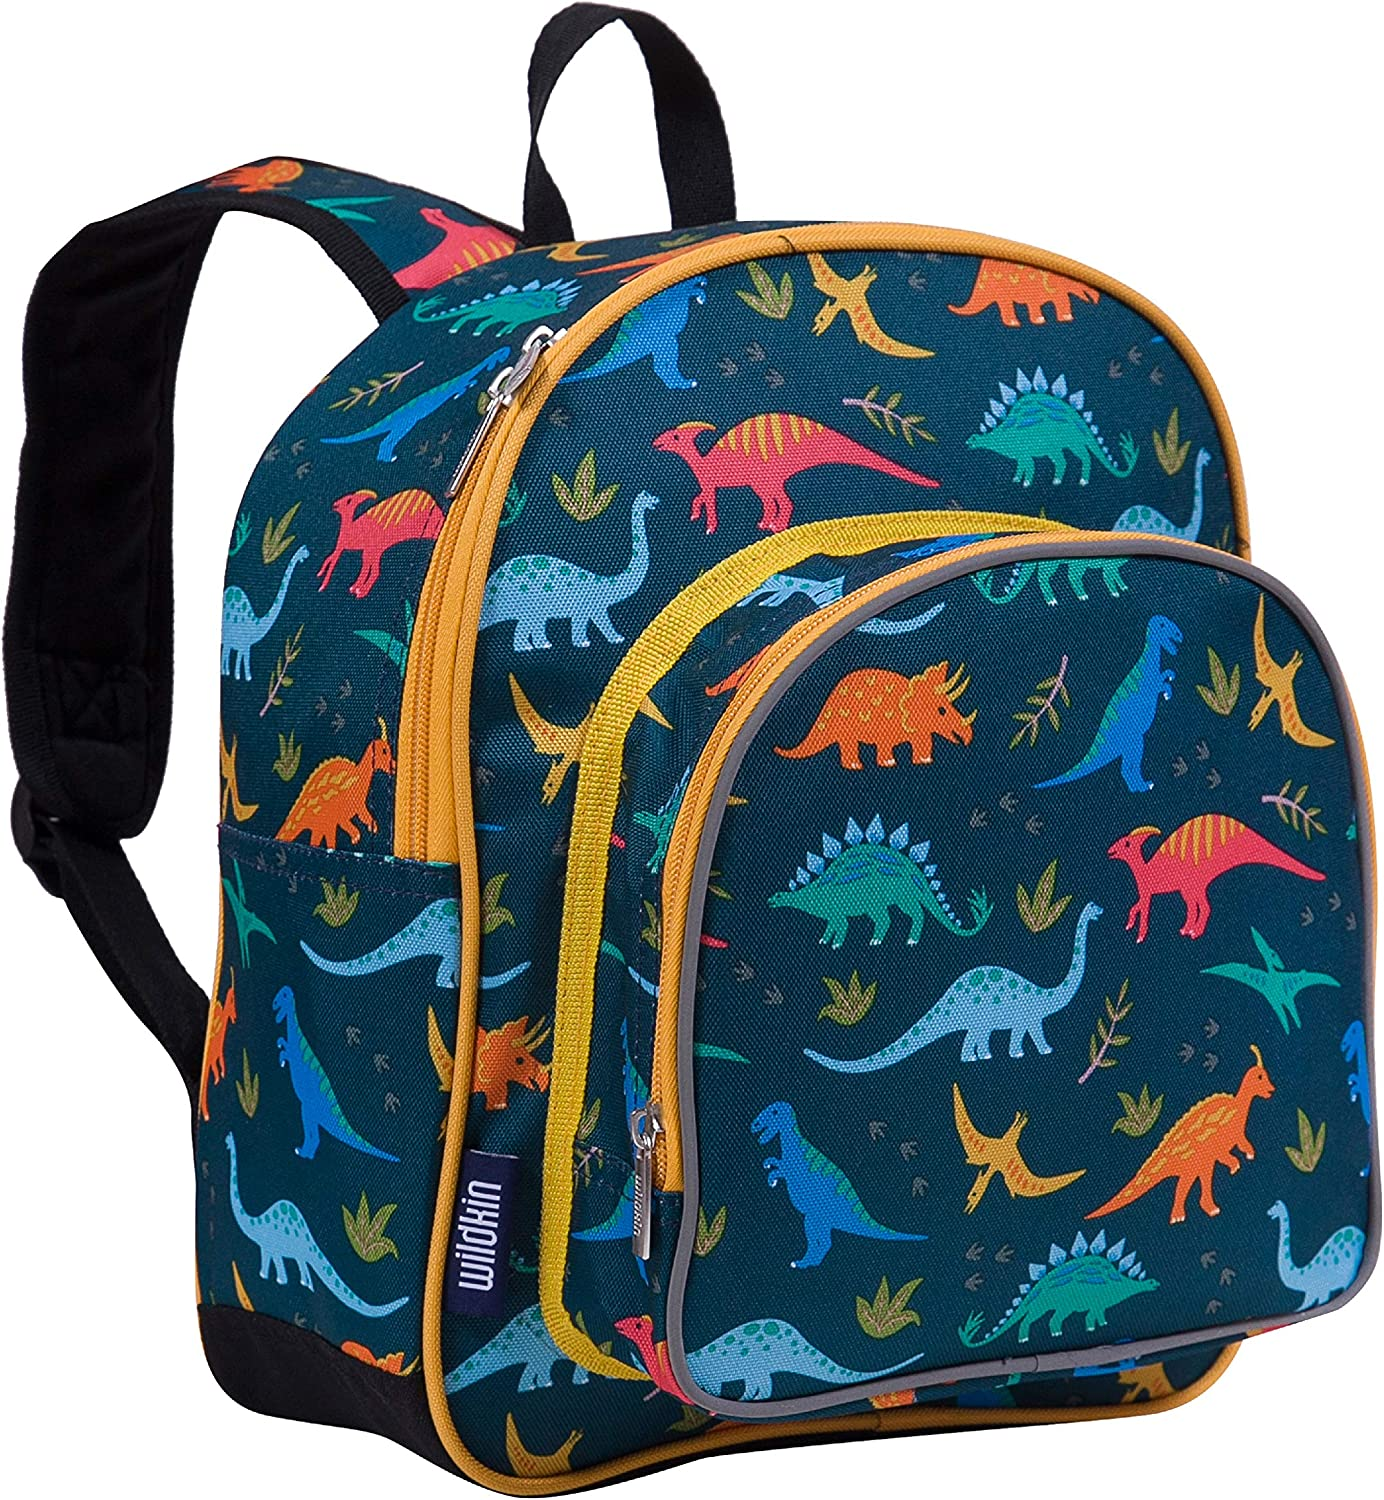 Wildkin Kids 12 Inches Backpack for Toddlers, Boys and Girls, Ideal for Daycare, Preschool & Kindergarten, Perfect Size for School and Travel, Mom's Choice Award Winner, Olive Kids(Jurassic Dinosaurs)